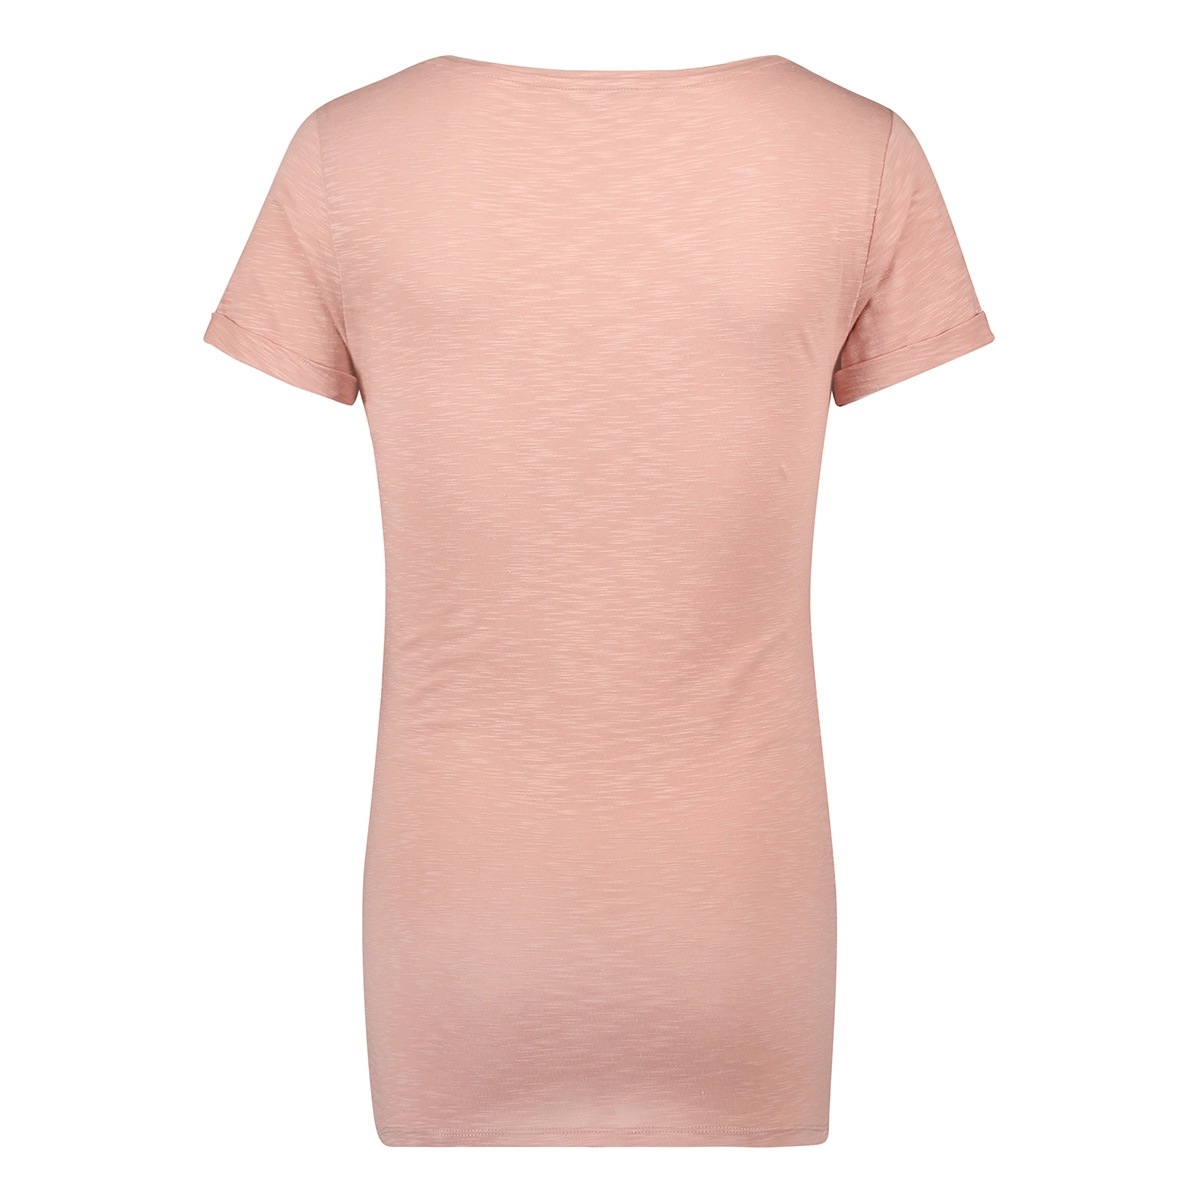 80126 tee aukje noppies positie shirt blush